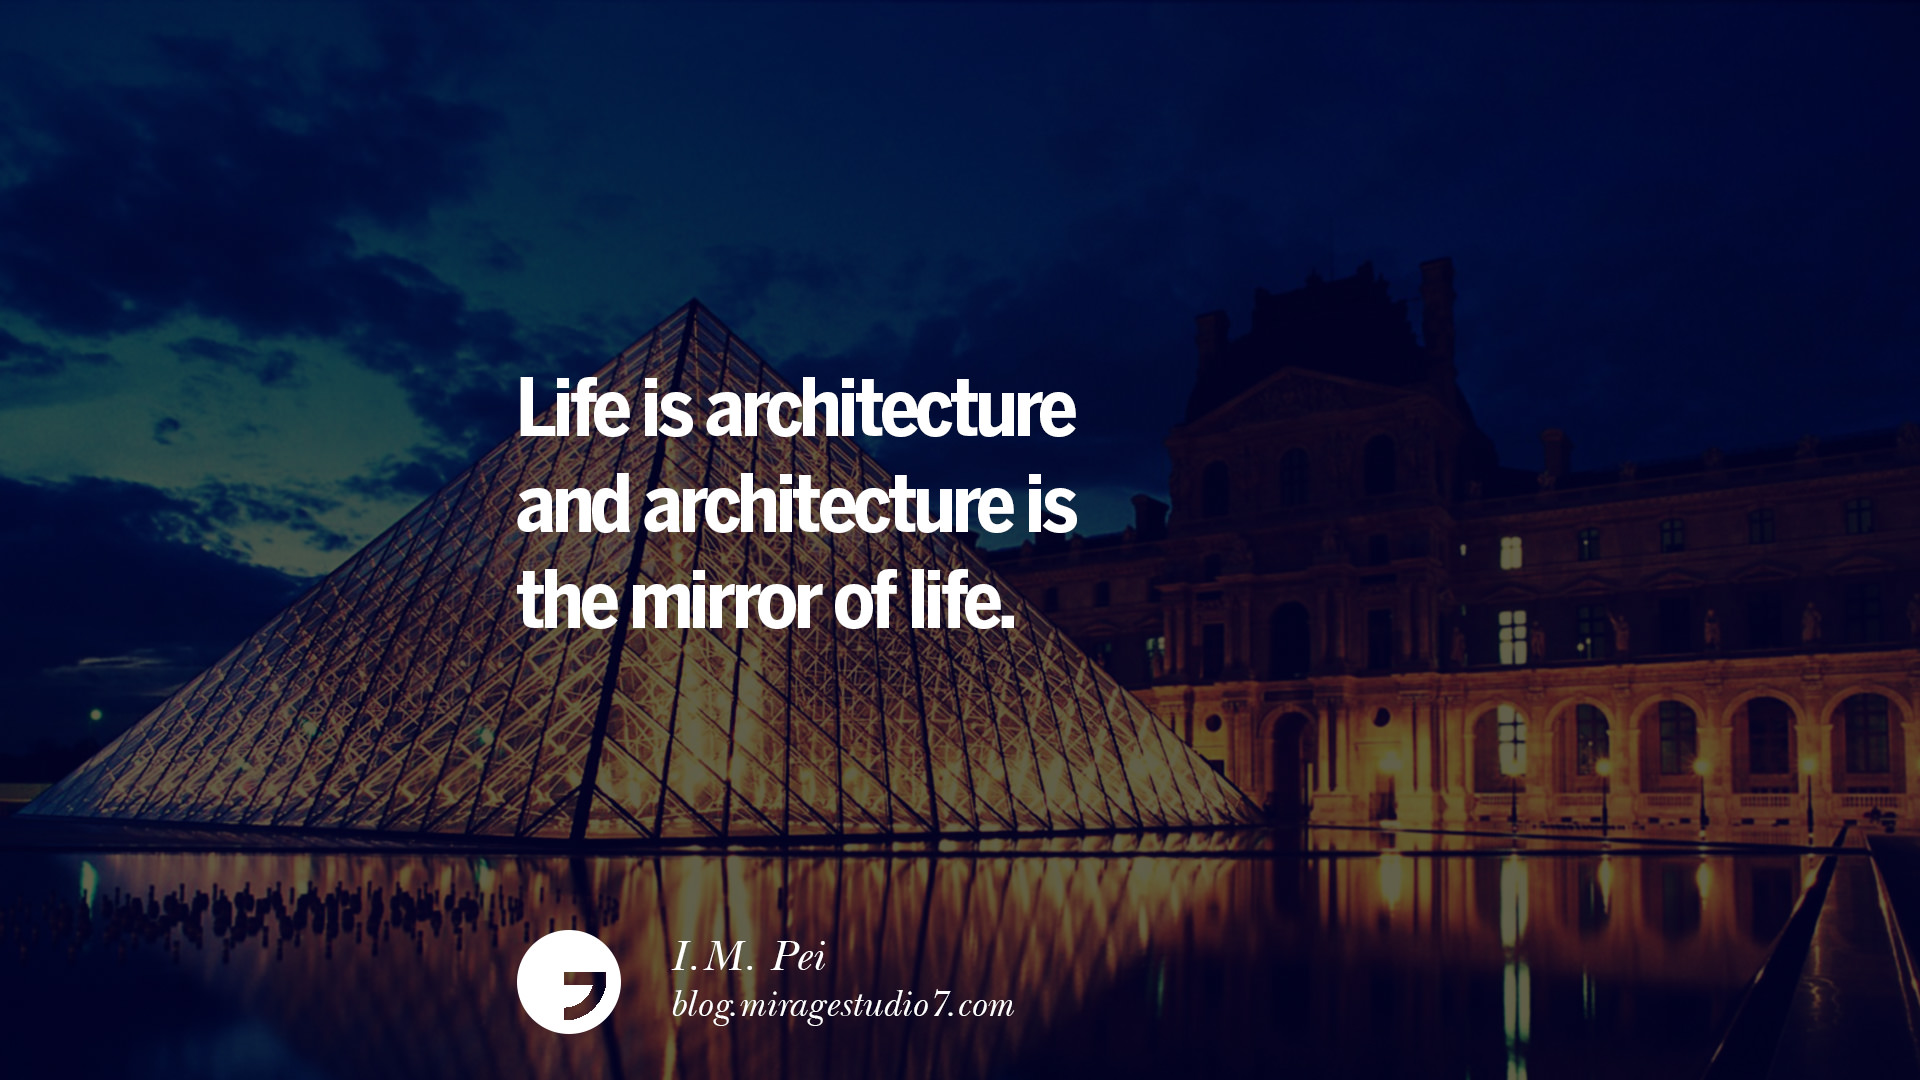 Inspirational Quotes Wallpaper Download 28 Inspirational Architecture Quotes By Famous Architects